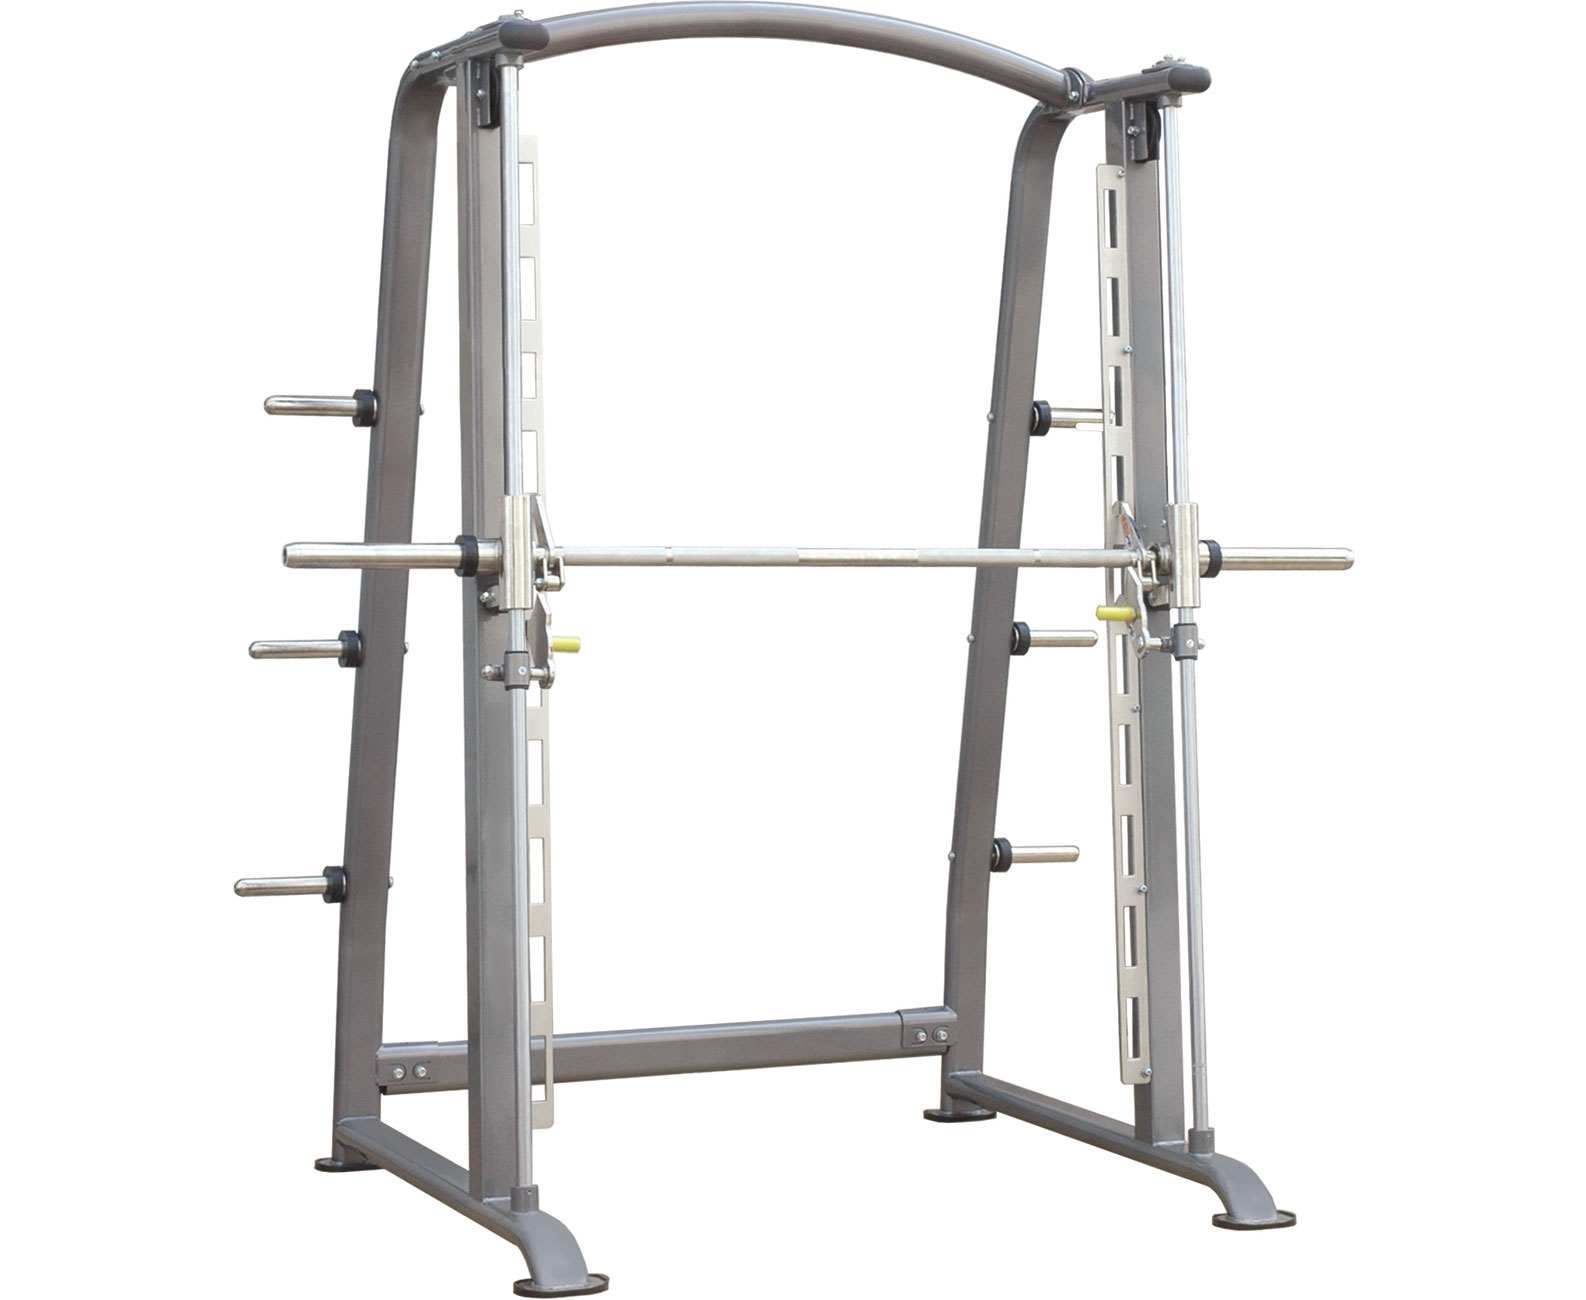 Impulse Smith machine